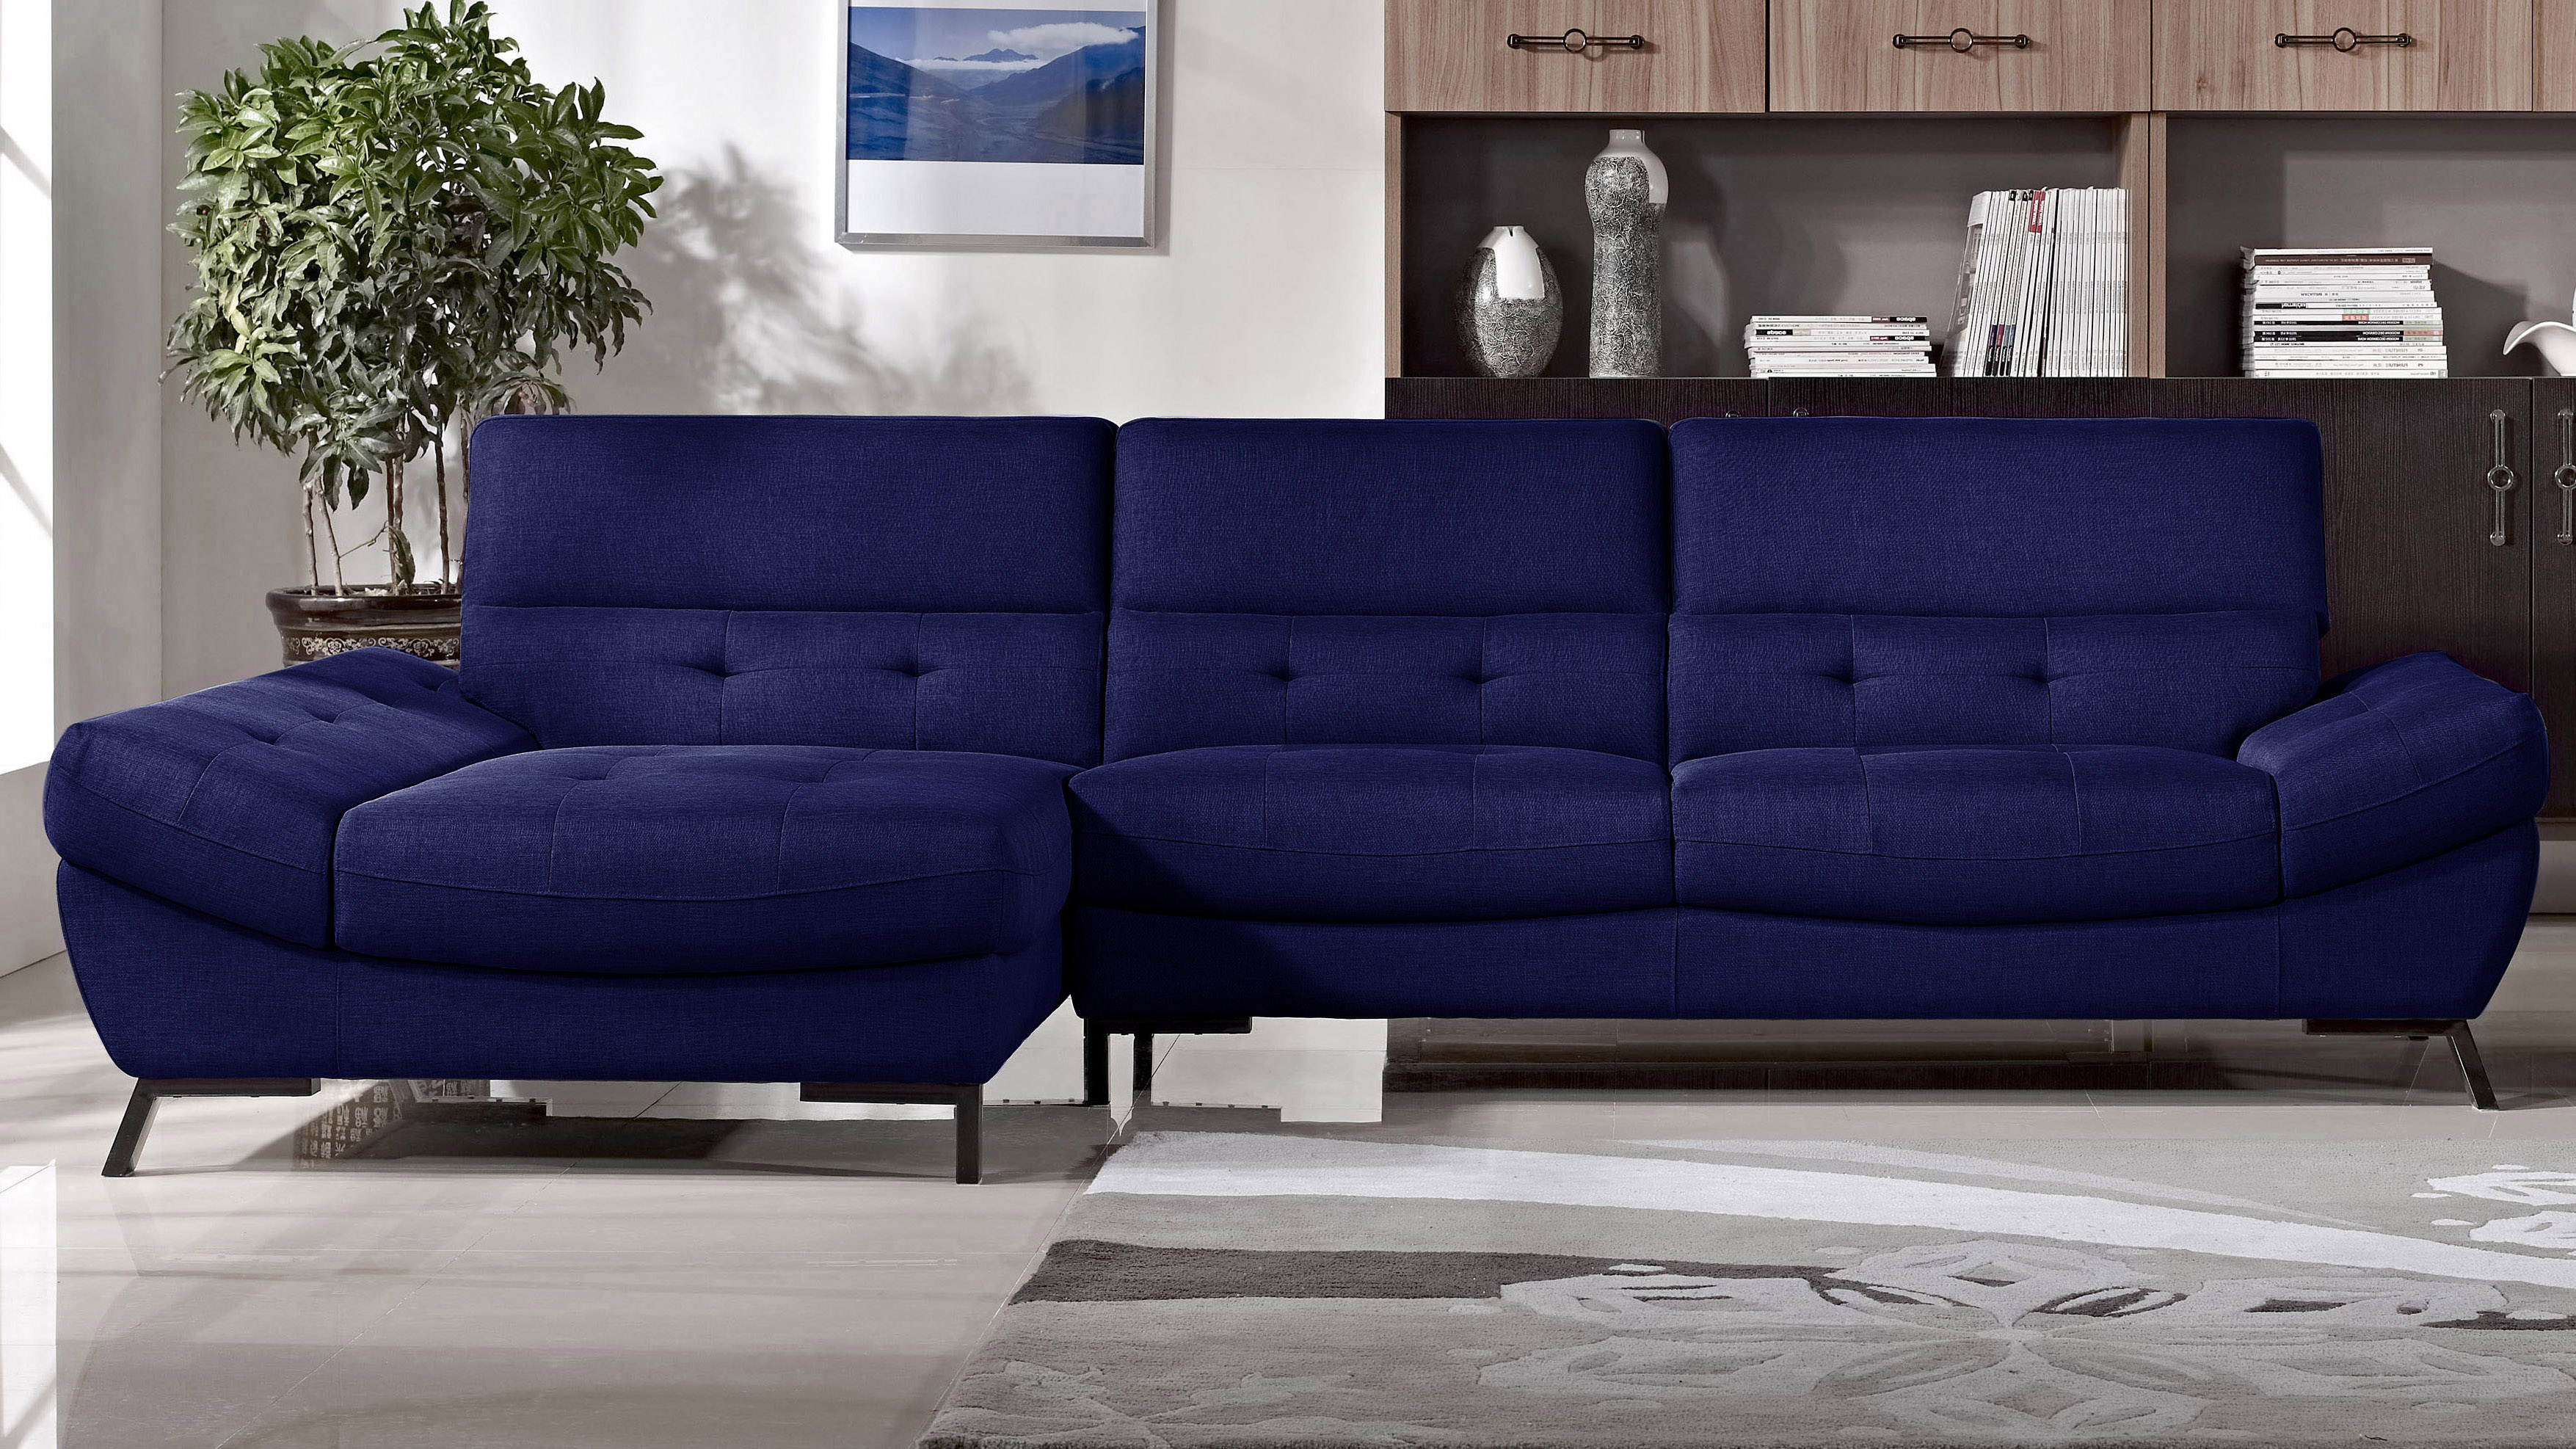 fresh cobalt blue sectional sofa sectional sofas. Black Bedroom Furniture Sets. Home Design Ideas